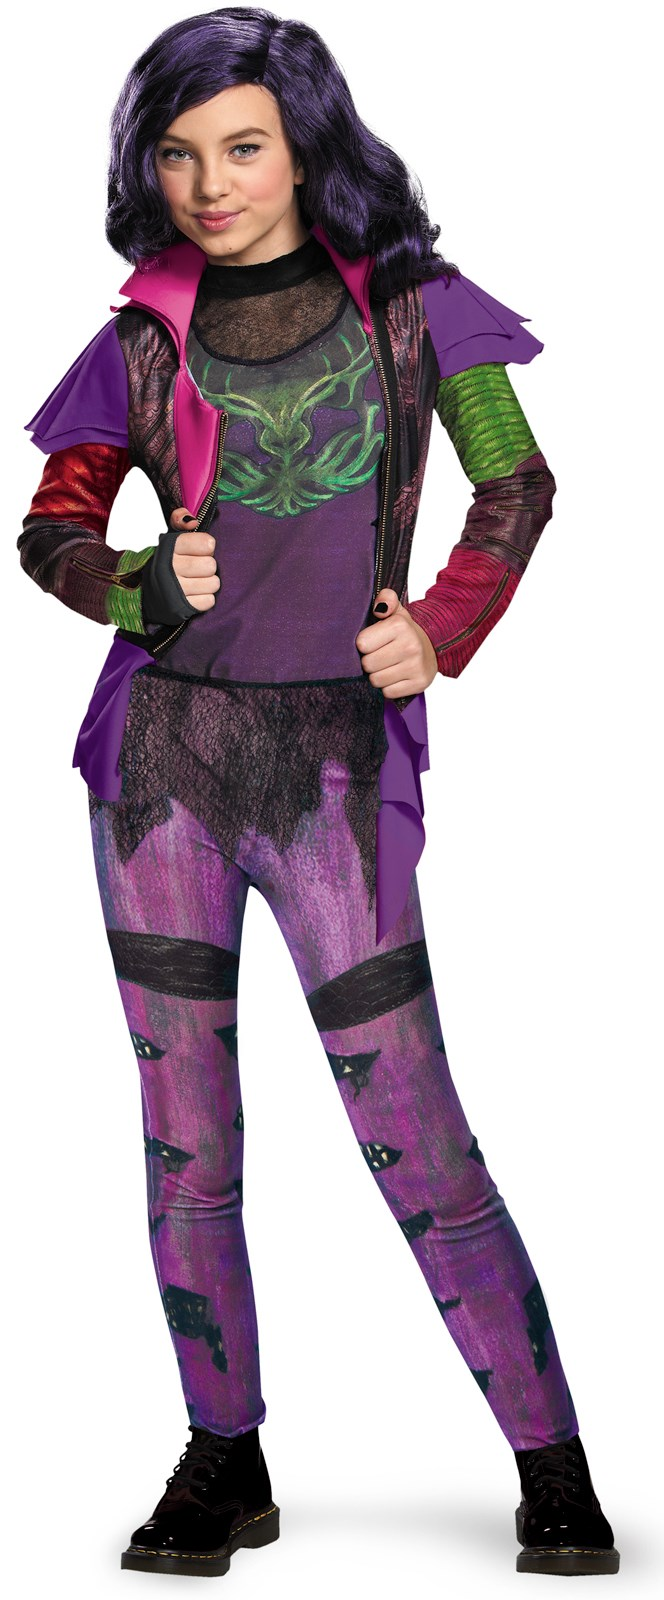 Mal Isle Of The Lost Deluxe Costume From Disney Descendants